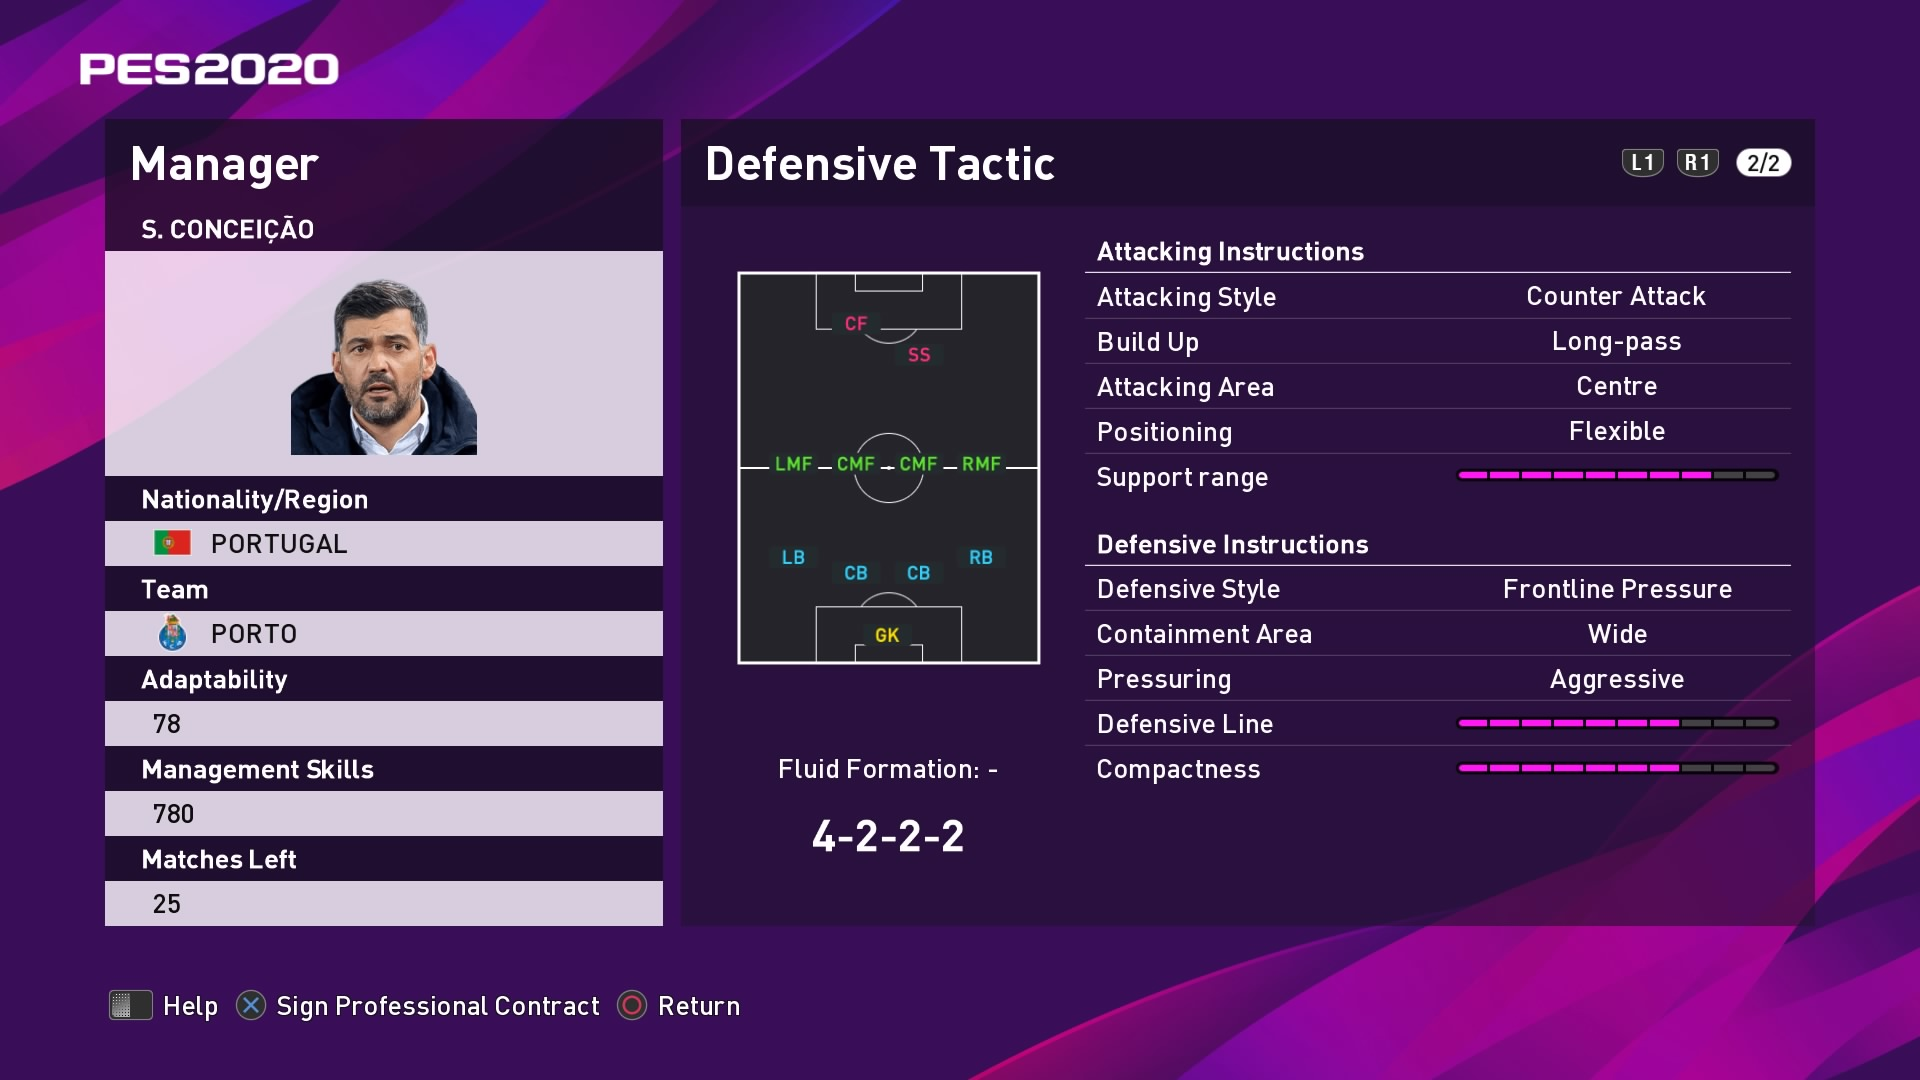 S. Conceição (Sérgio Conceição) Defensive Tactic in PES 2020 myClub